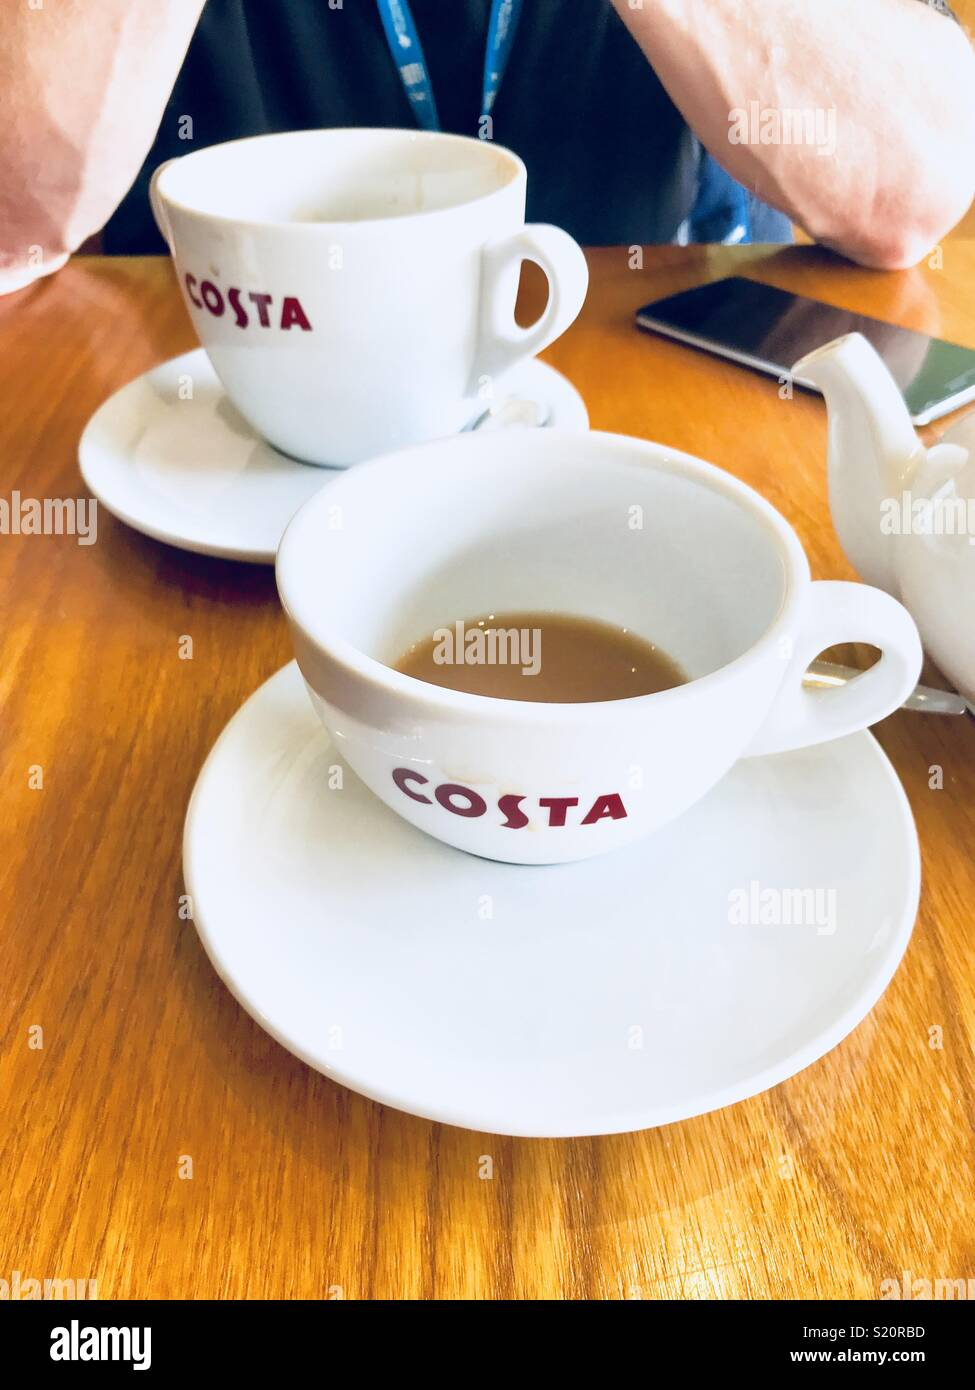 drinking costa coffee stock